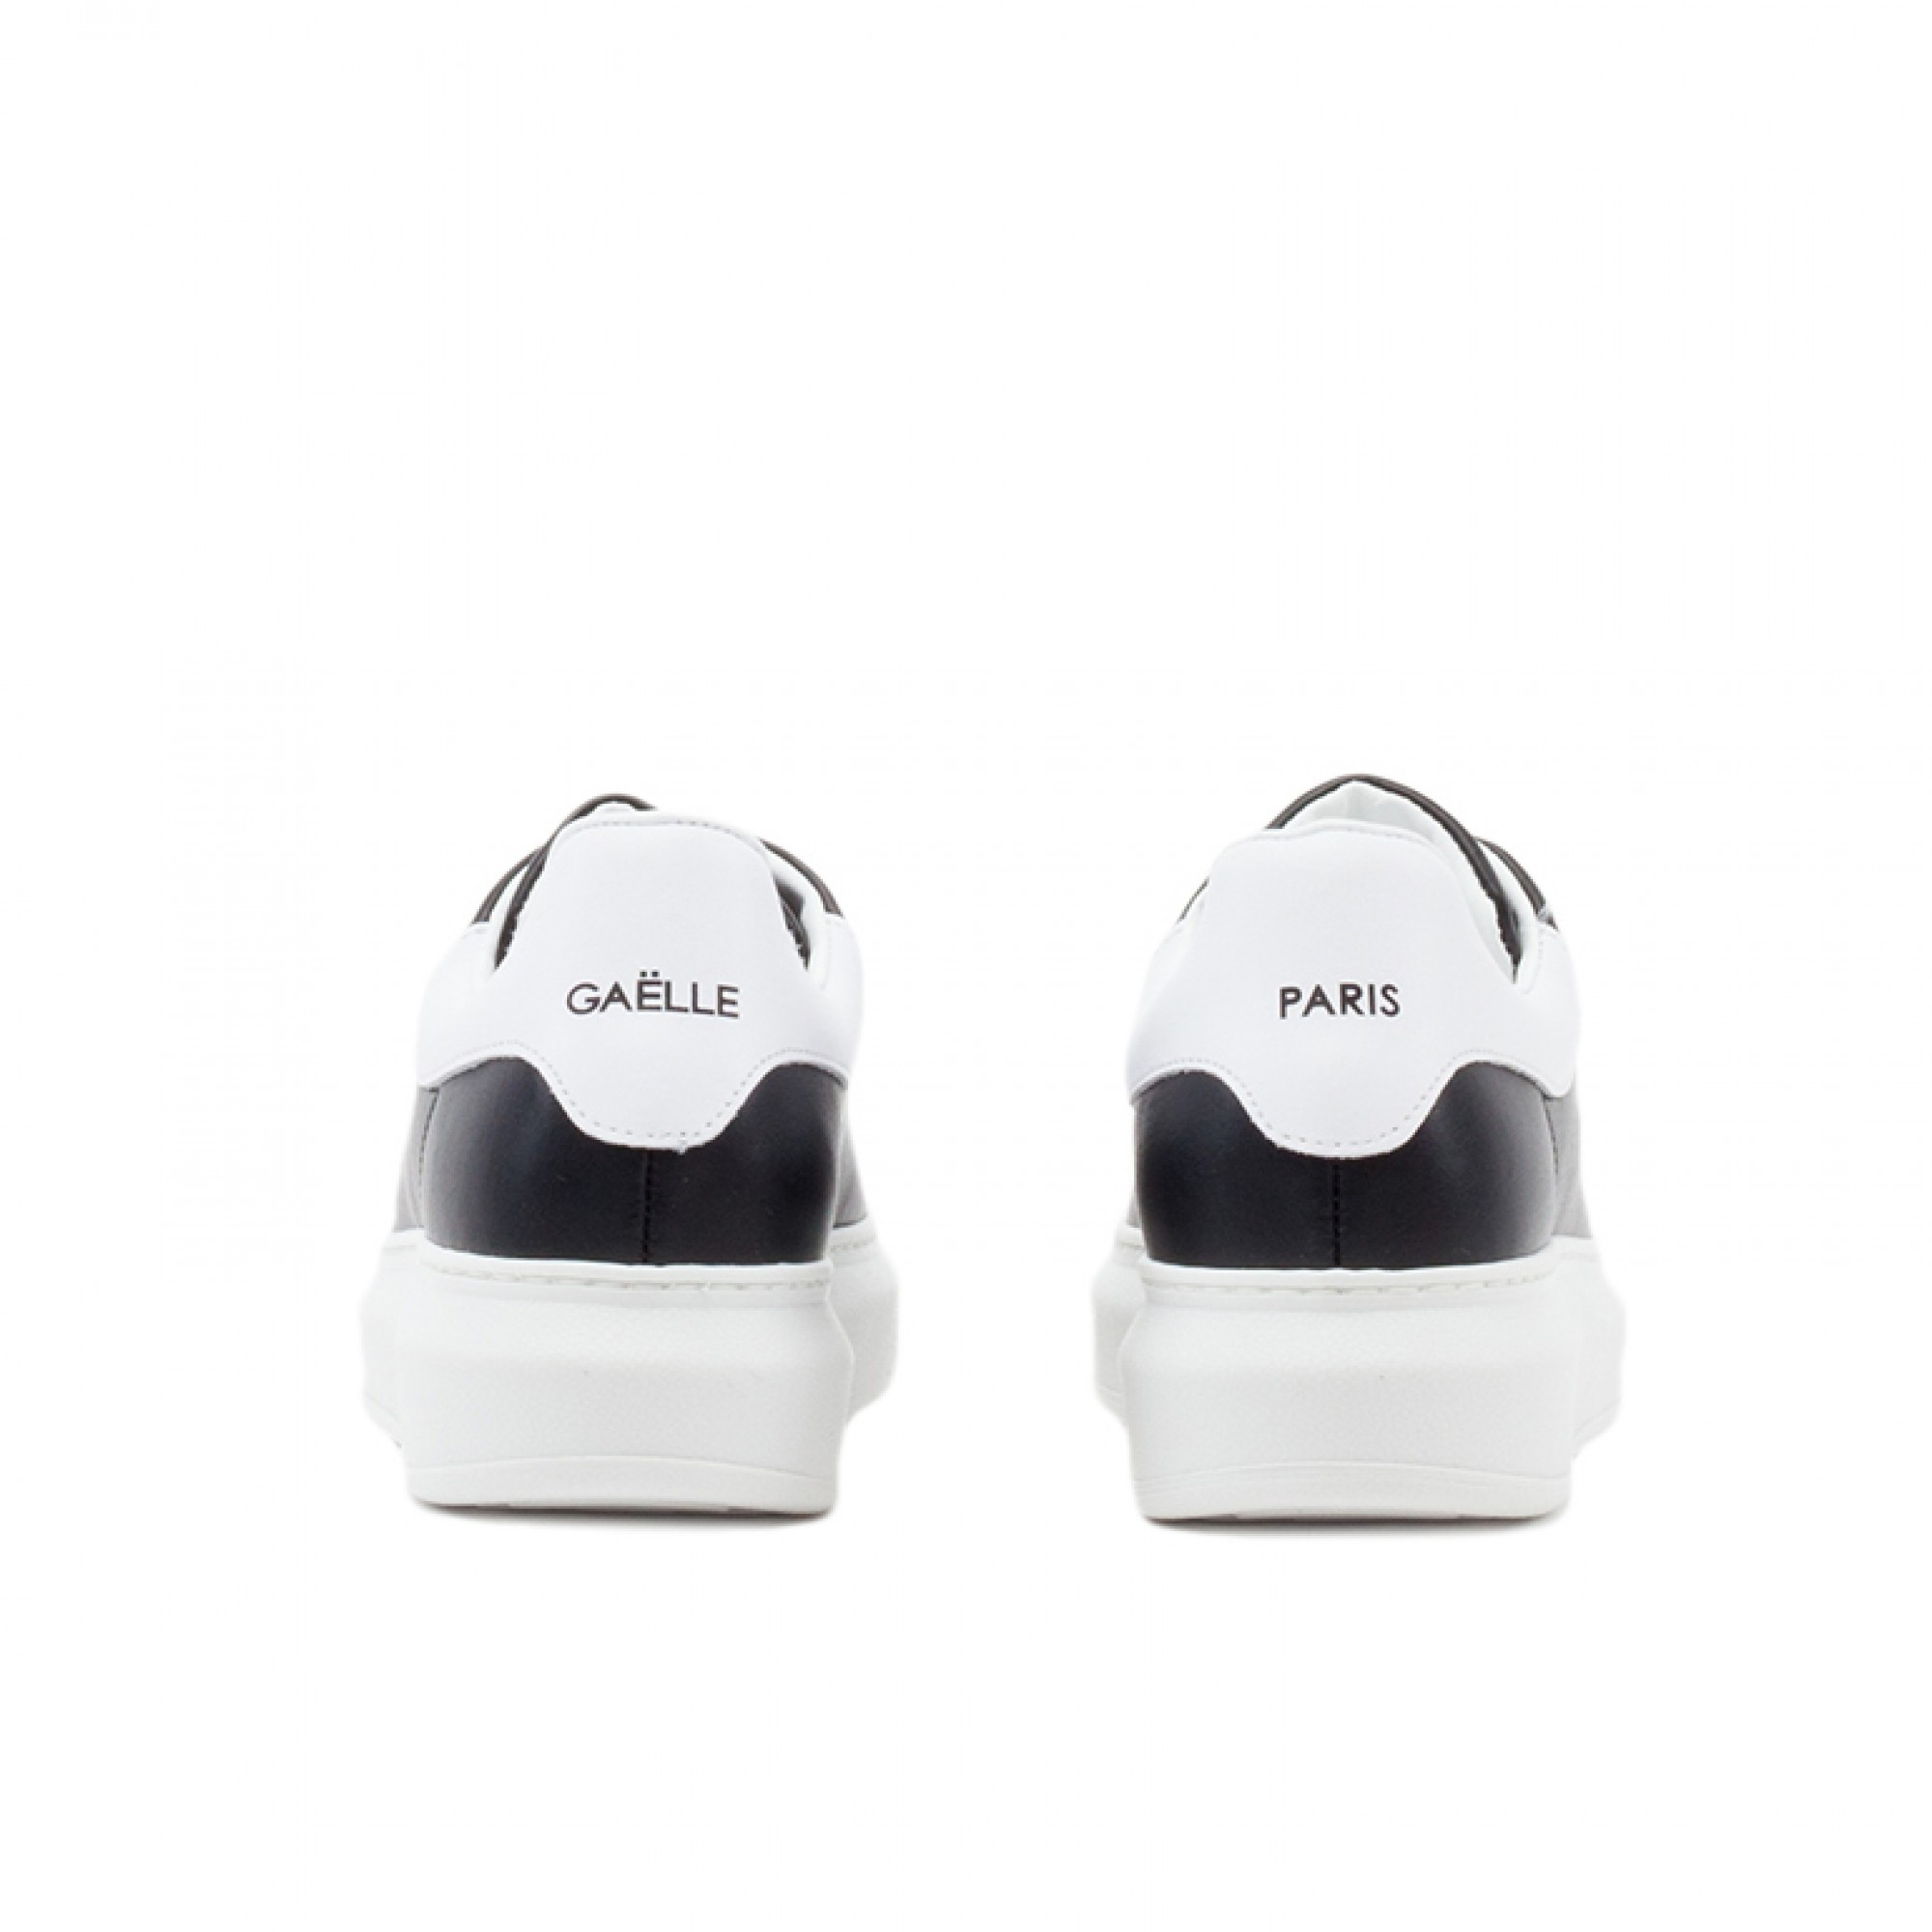 SNEAKERS - GBDA1301 - GAELLE PARIS